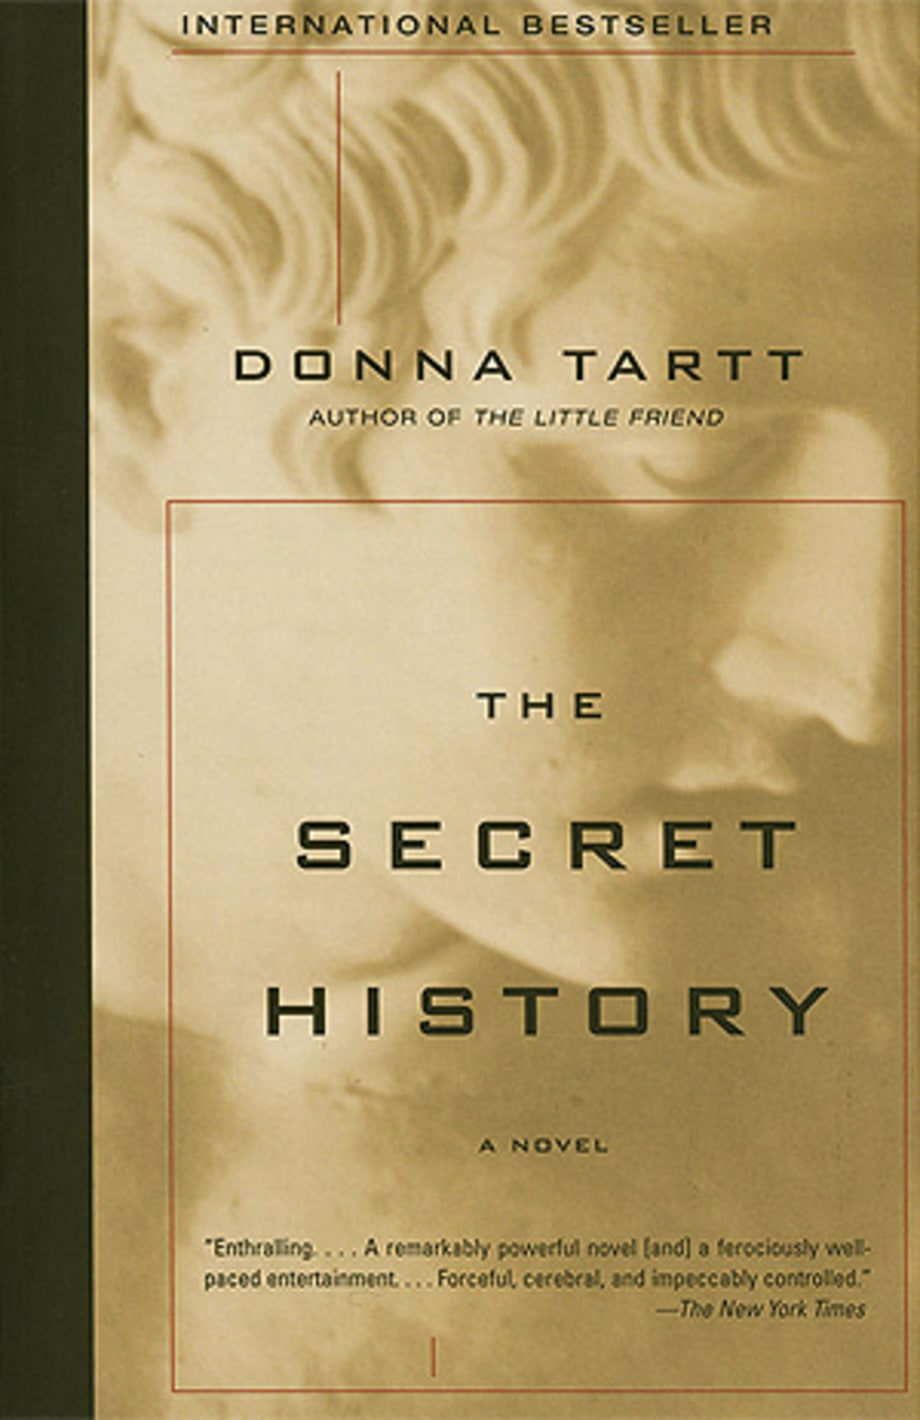 For the Guy With a Lot of Vacation Time: The Secret History by Donna Tartt